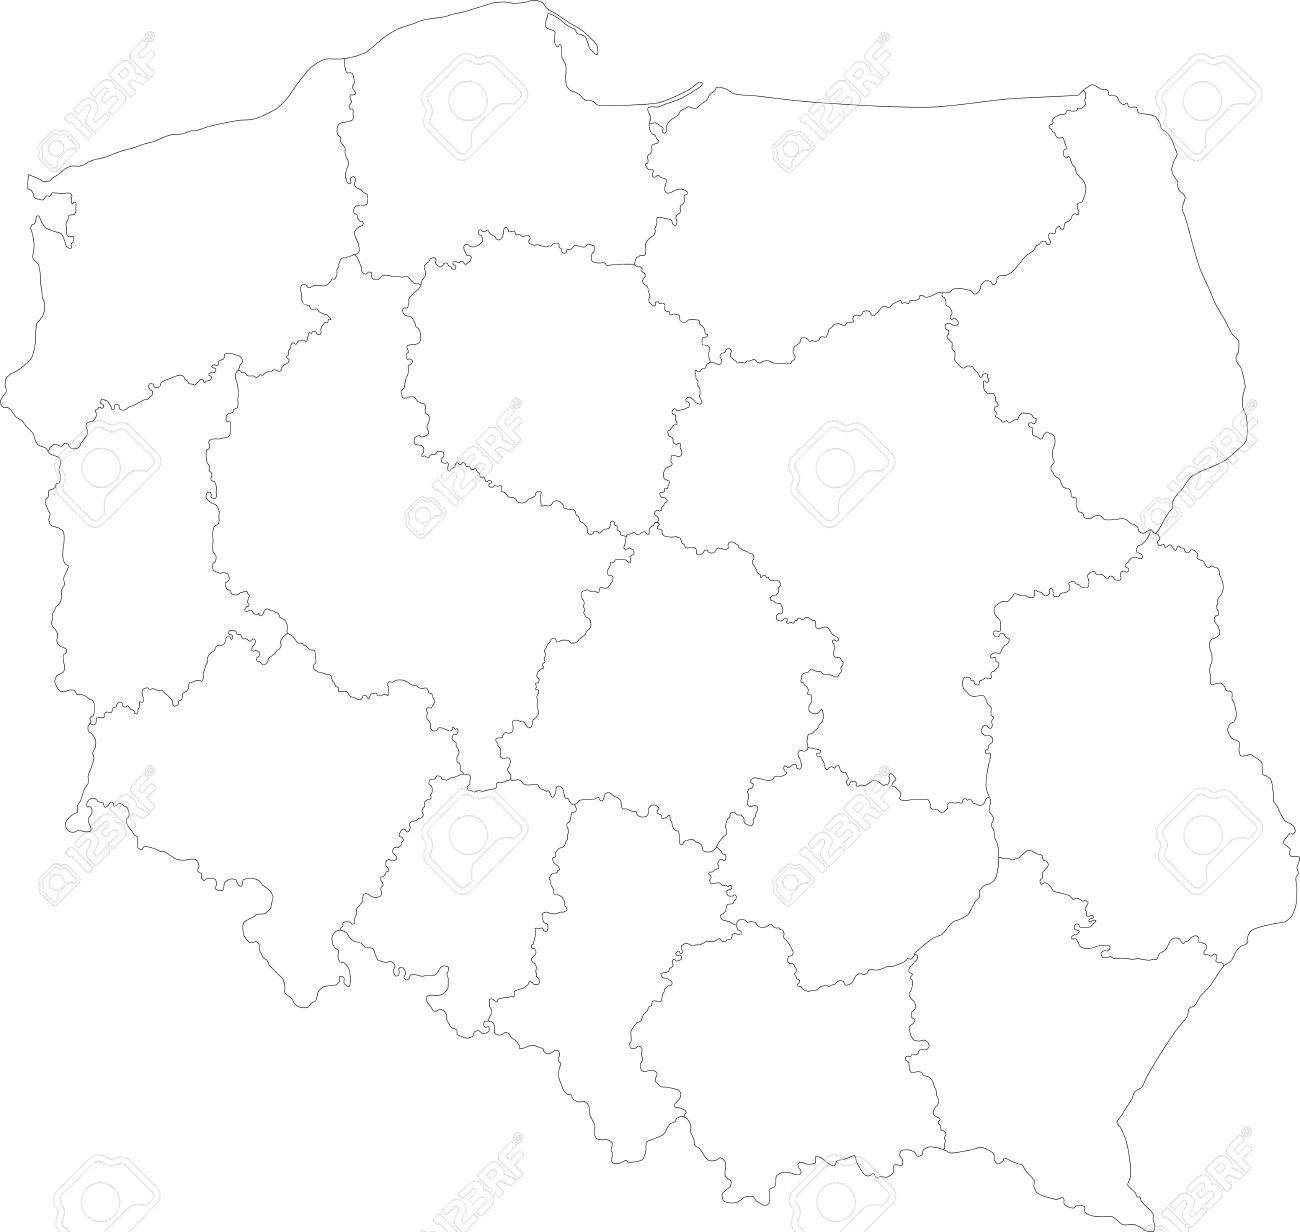 Map Of Administrative Divisions Of Poland Royalty Free Cliparts